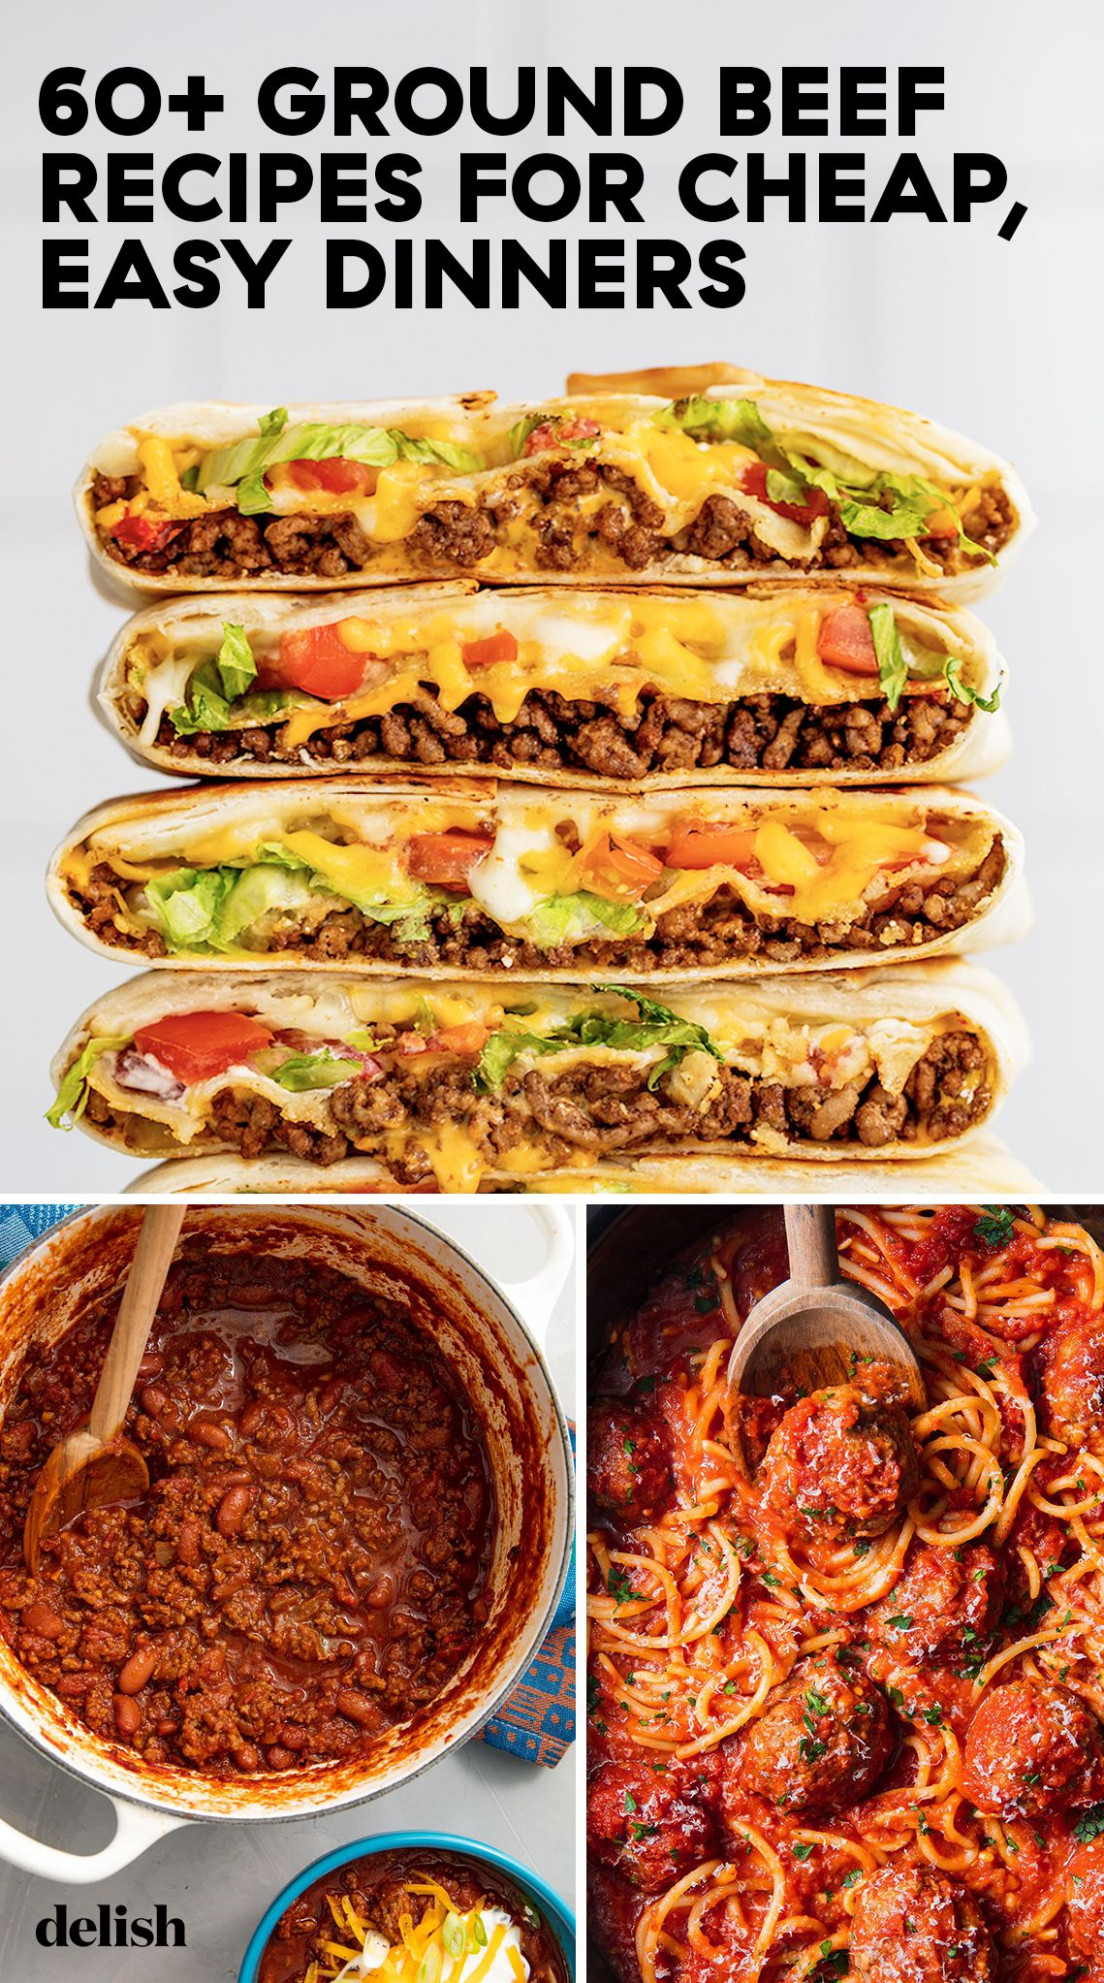 11+ Easy Ground Beef Recipes - What To Make With Ground Beef